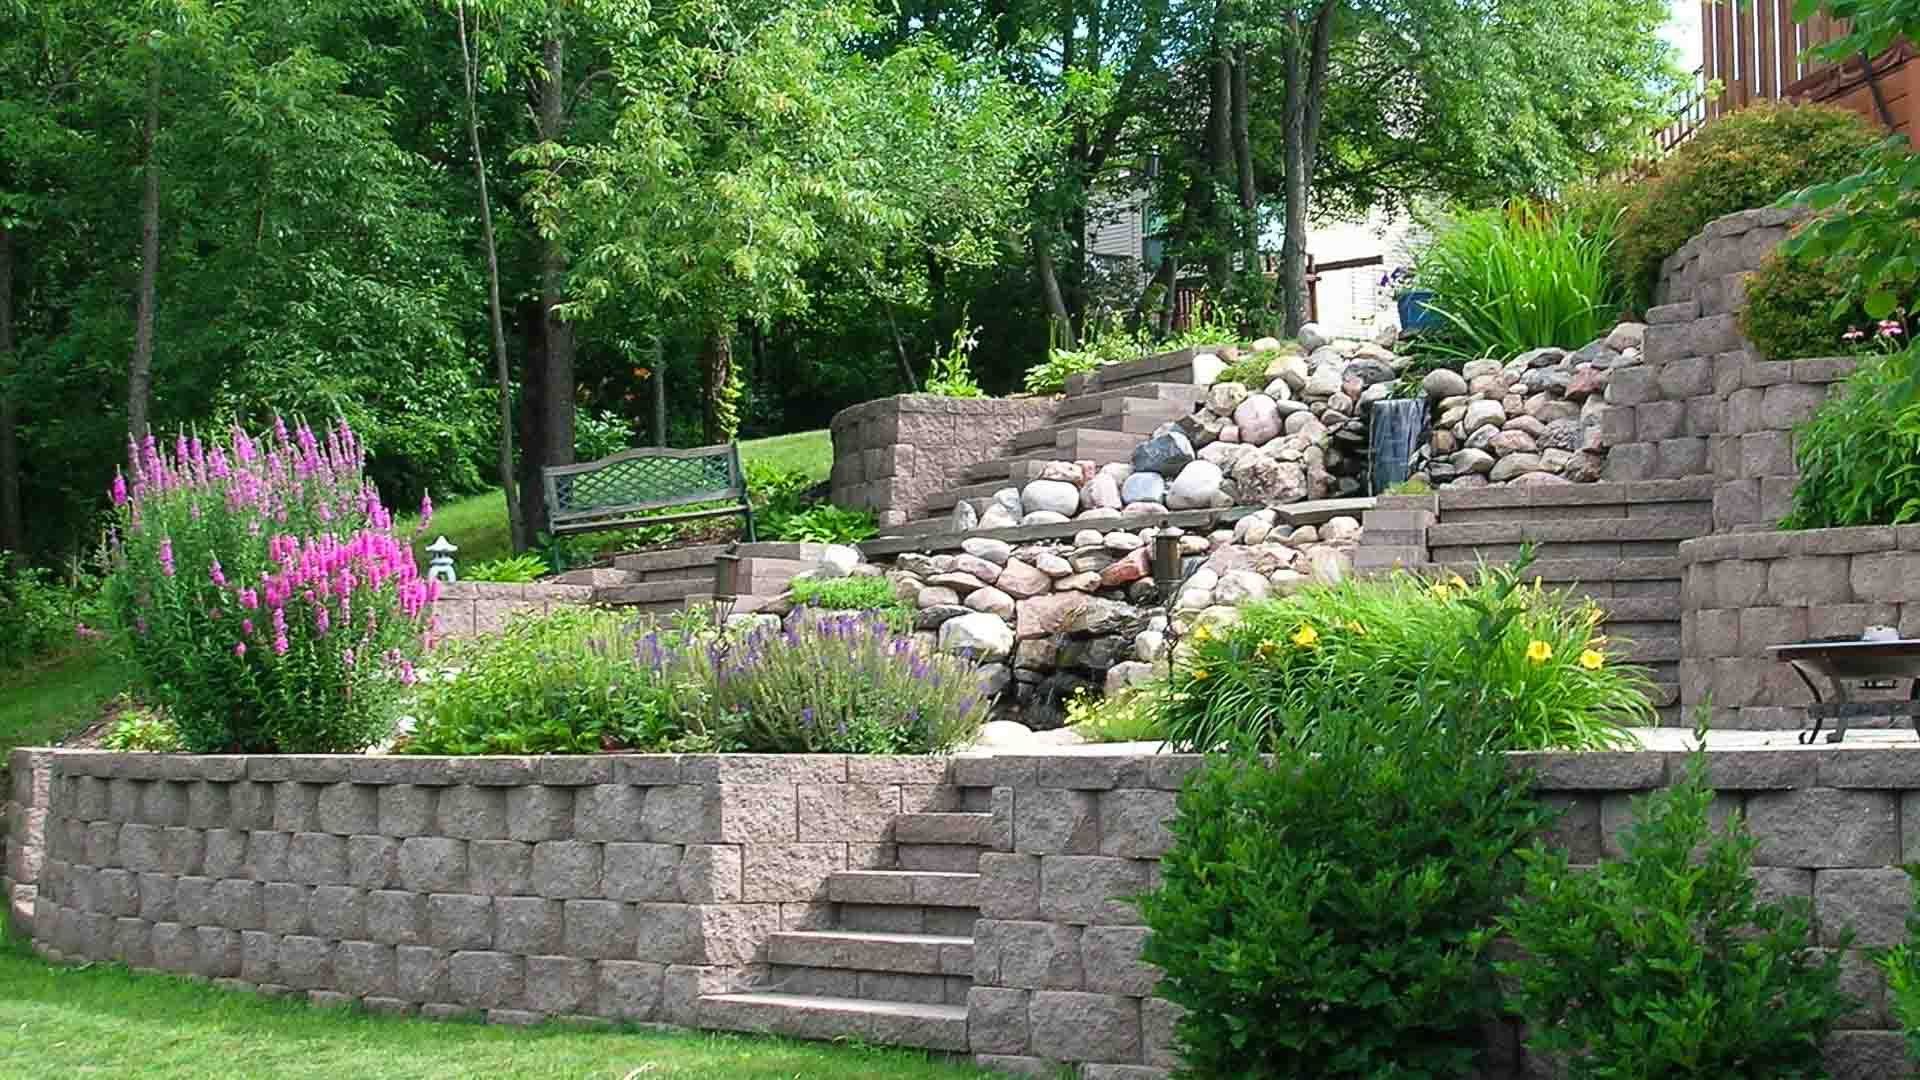 Landscaped Gardens Facility: Landscaping Design - Garden Center